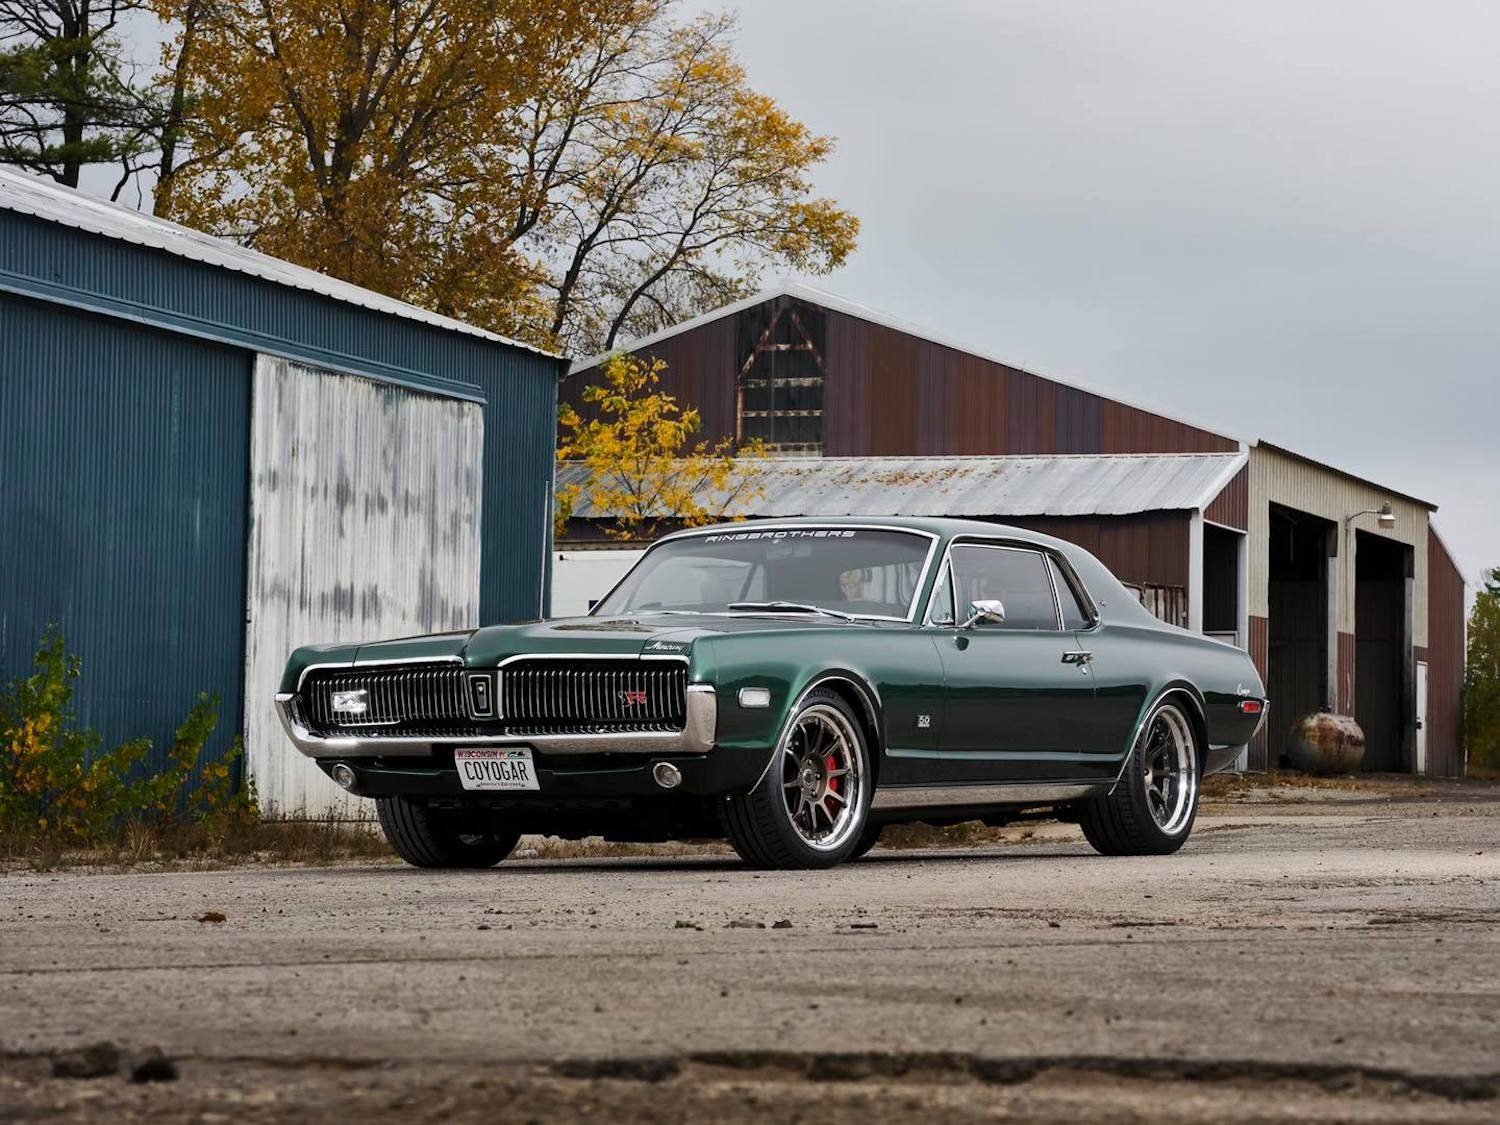 Ringbrothers Mercury Cougar XR7 muscle car restomod vintage car